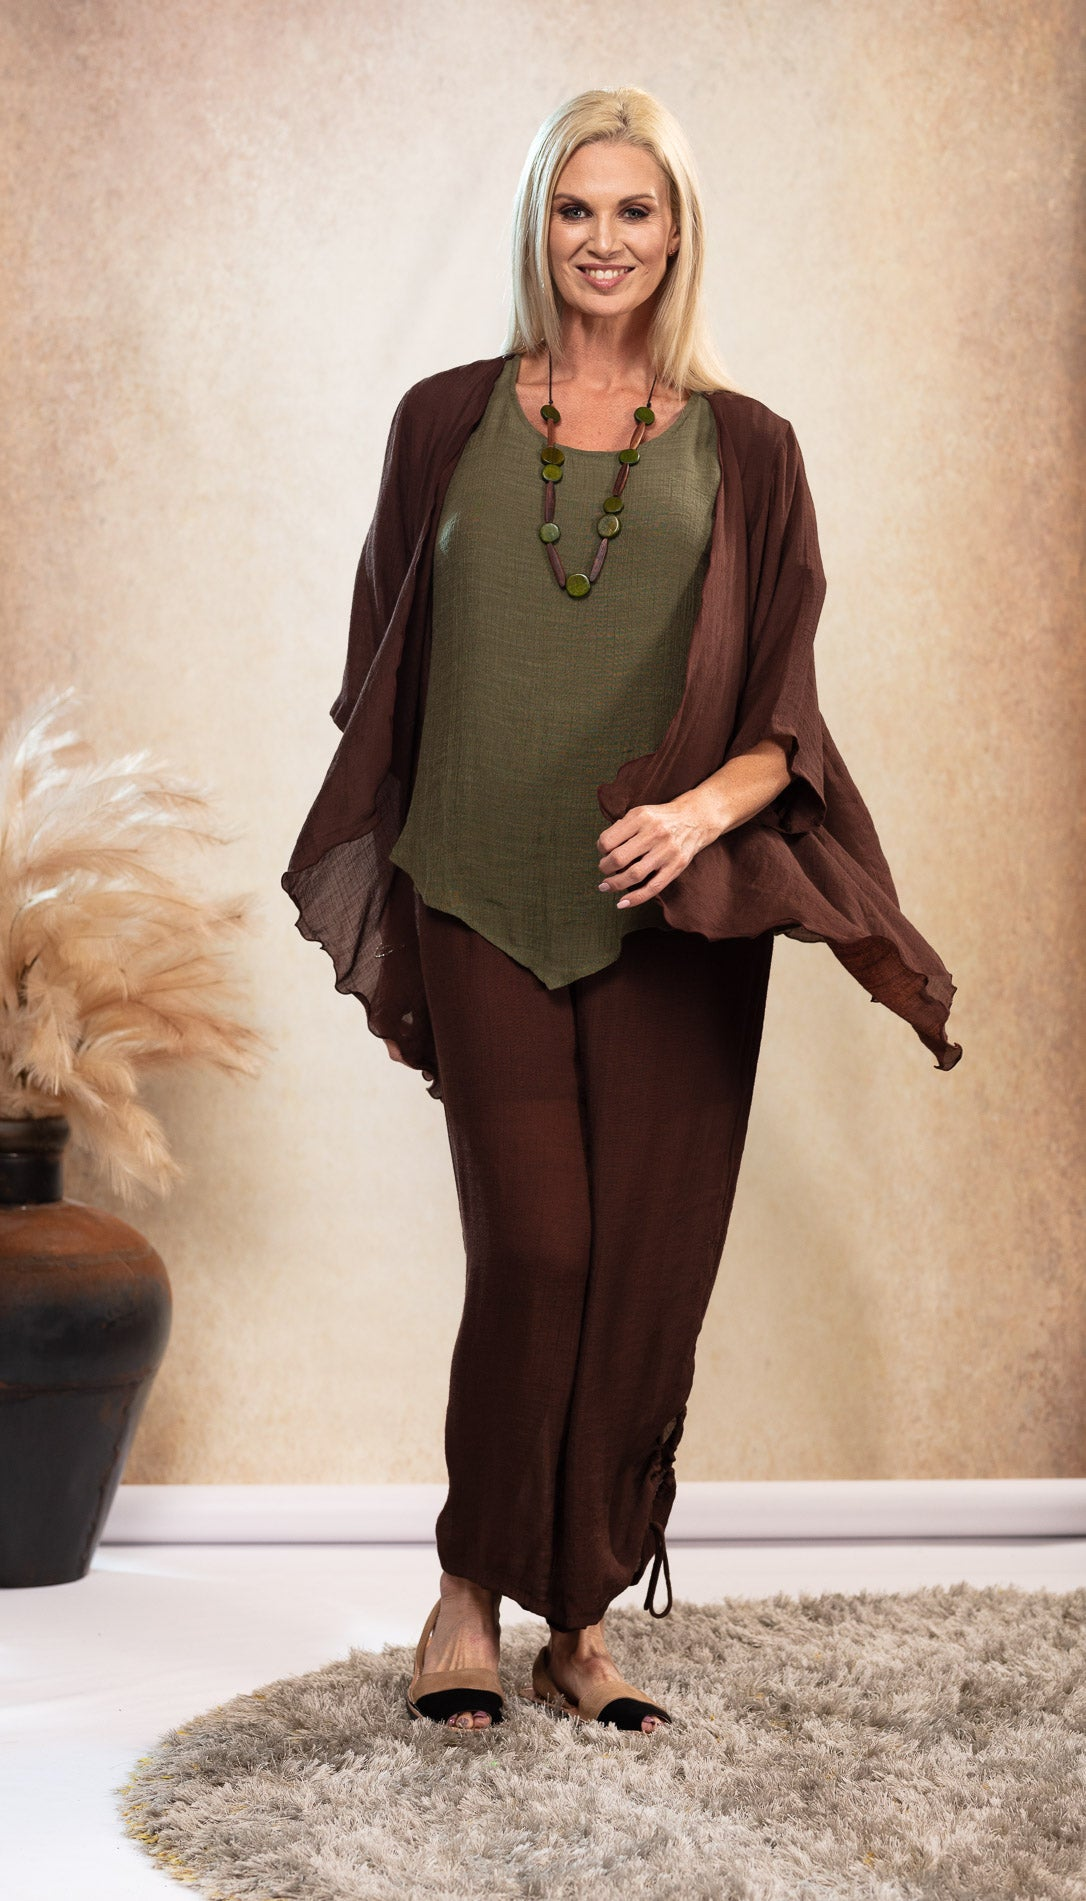 Bamboo Top earthy Olive Khaki Green colour. Bamboo Top with sleeve. Chocolate Brown long bamboo pants. Harem pants. Bamboo Pants with pockets. Chocolate Brown Jacket. Natural coloured shoes. Nude colour Avarca sandals.